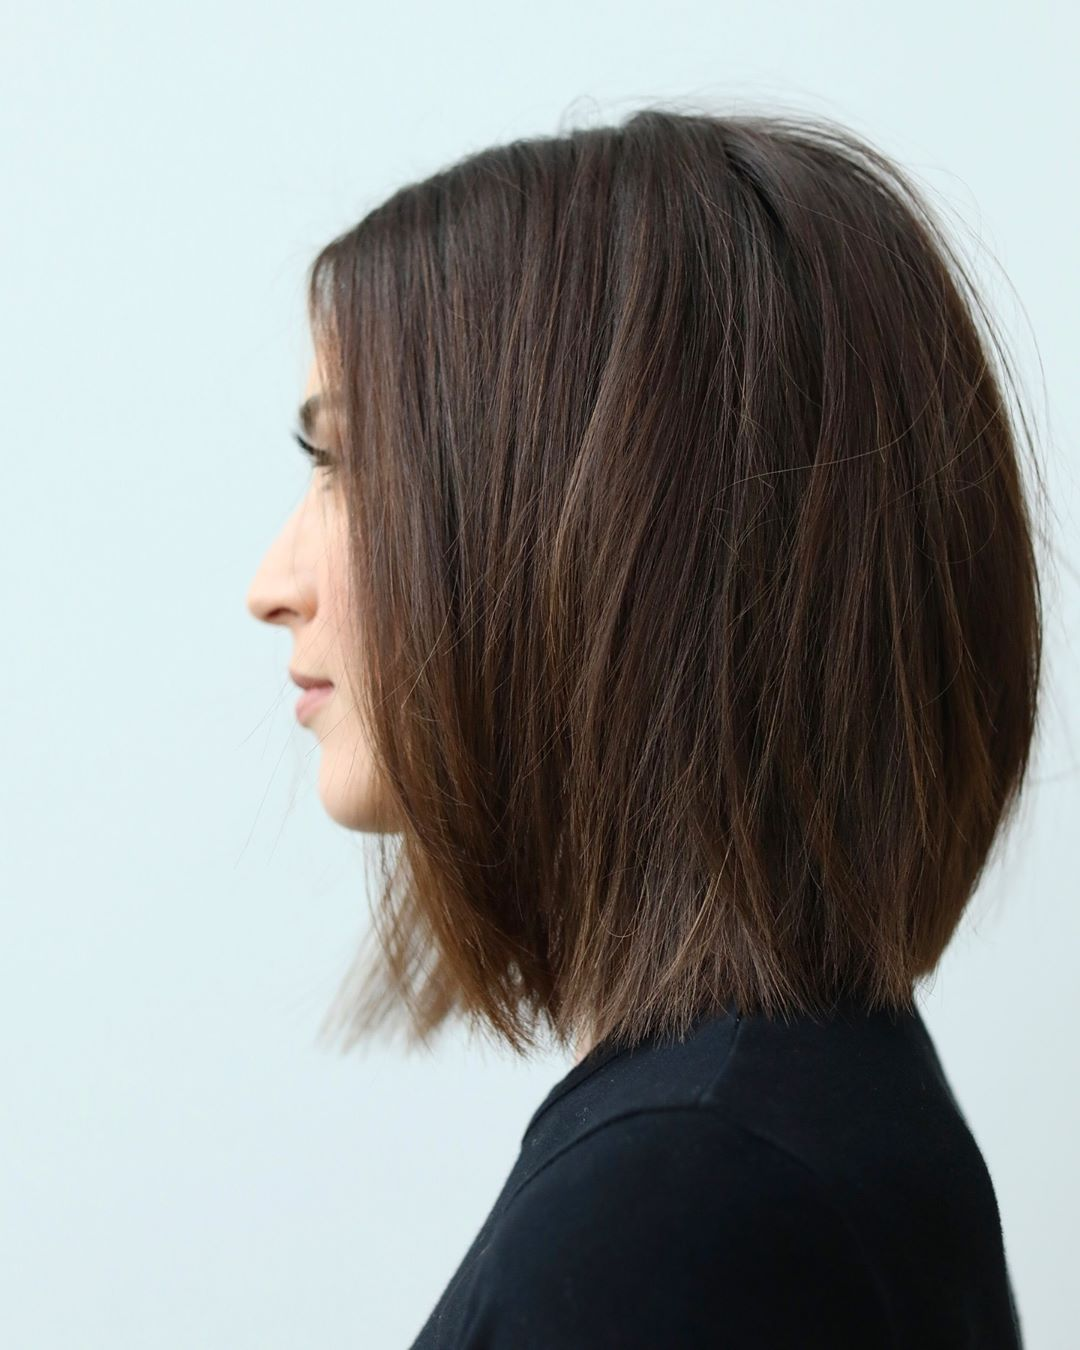 Modern Short Bob Haircut, Easy Short Hair Styles for Women, Girls